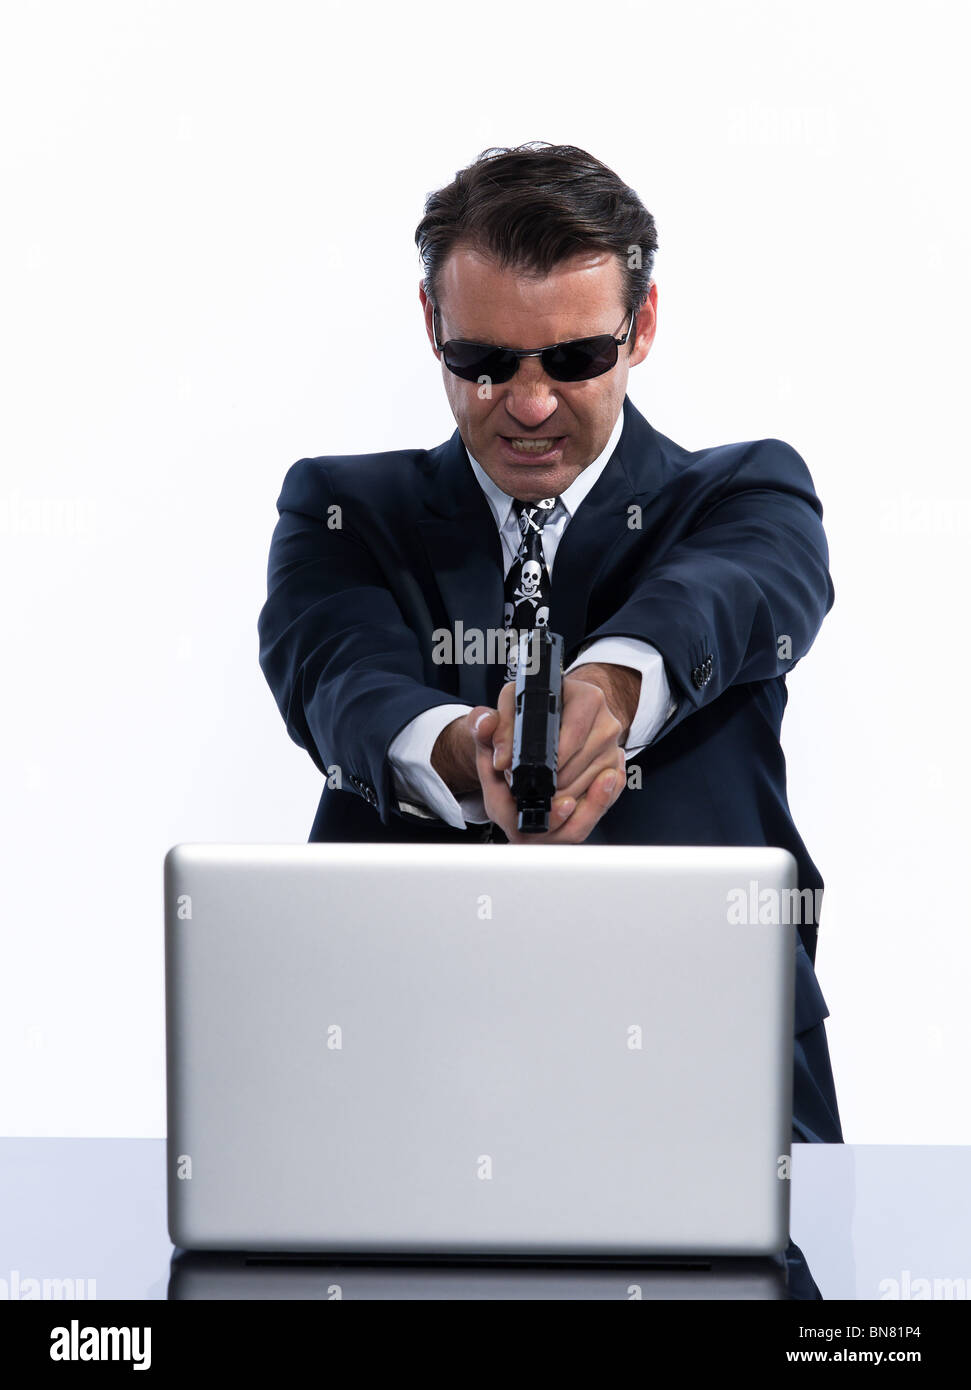 man caucasian hacker computer attack isolated studio on white background - Stock Image